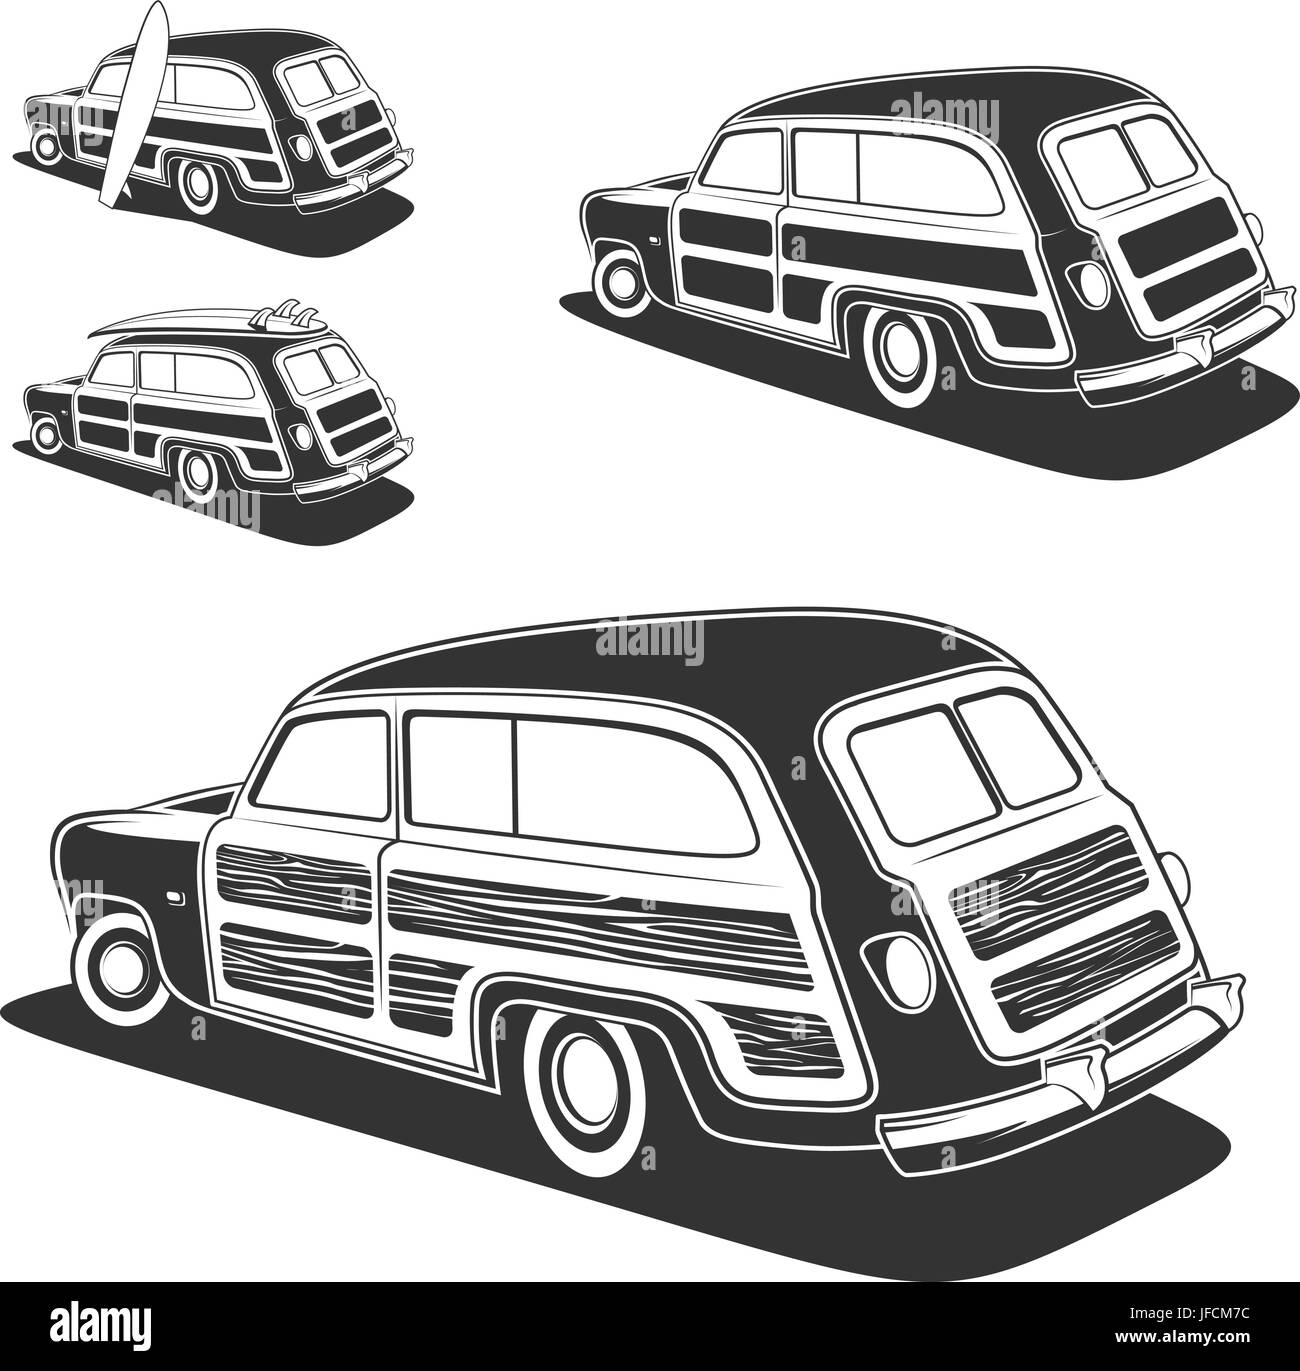 Retro surfboard woodie wagon car isolated on white background. Vector illustration. - Stock Vector